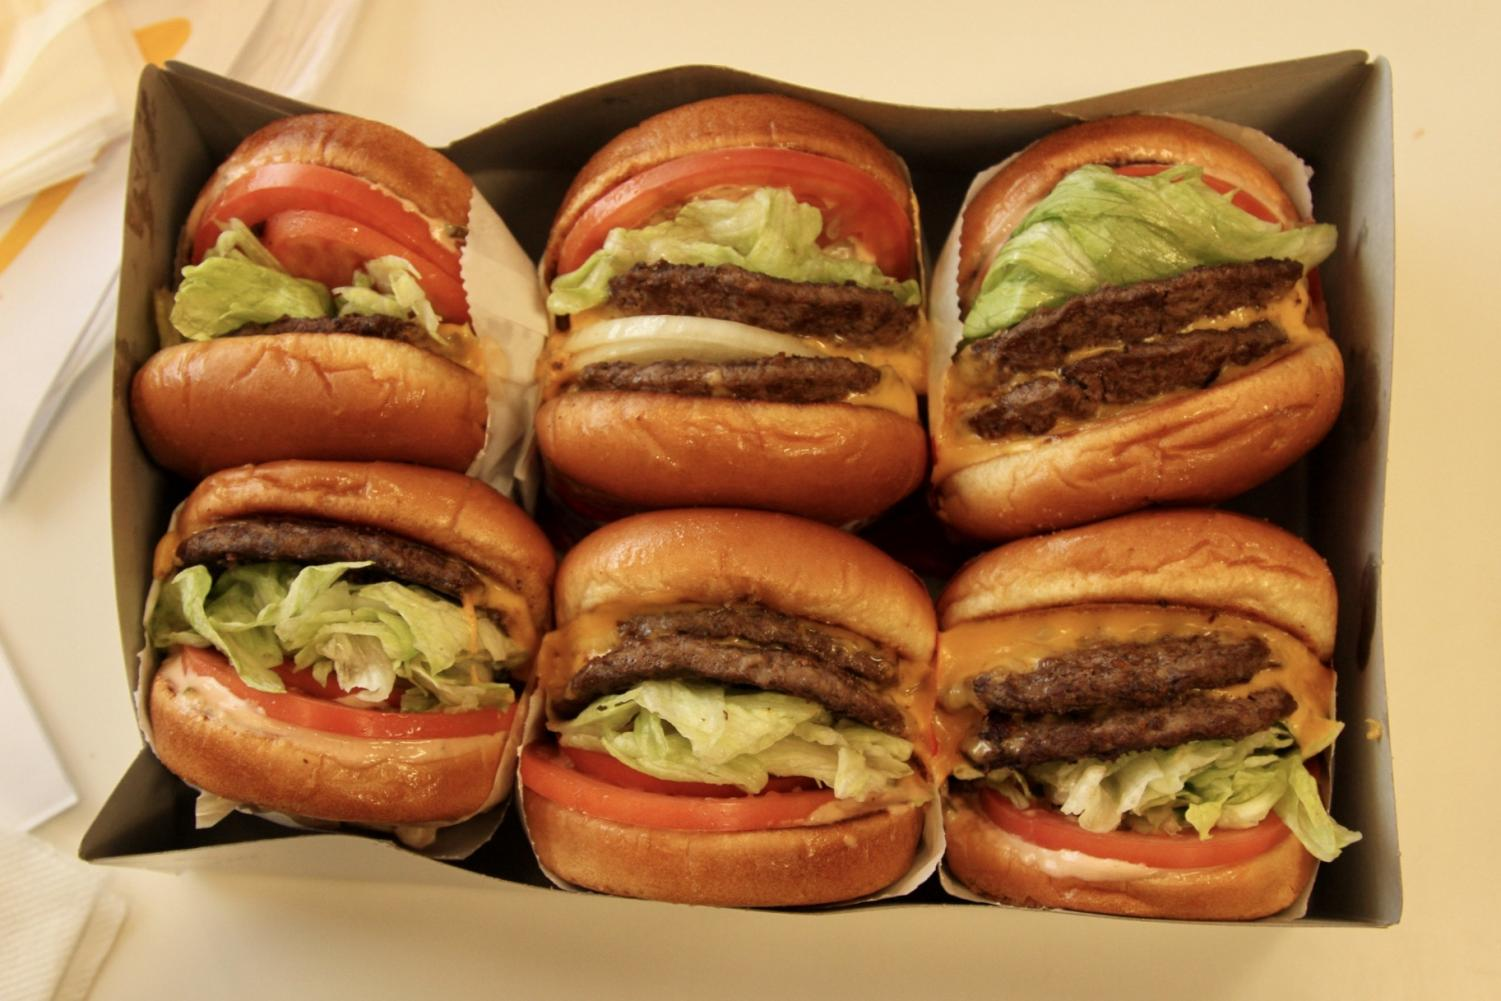 In-N-Out Burger originated in California, and now has restaurants in six states across the United States.